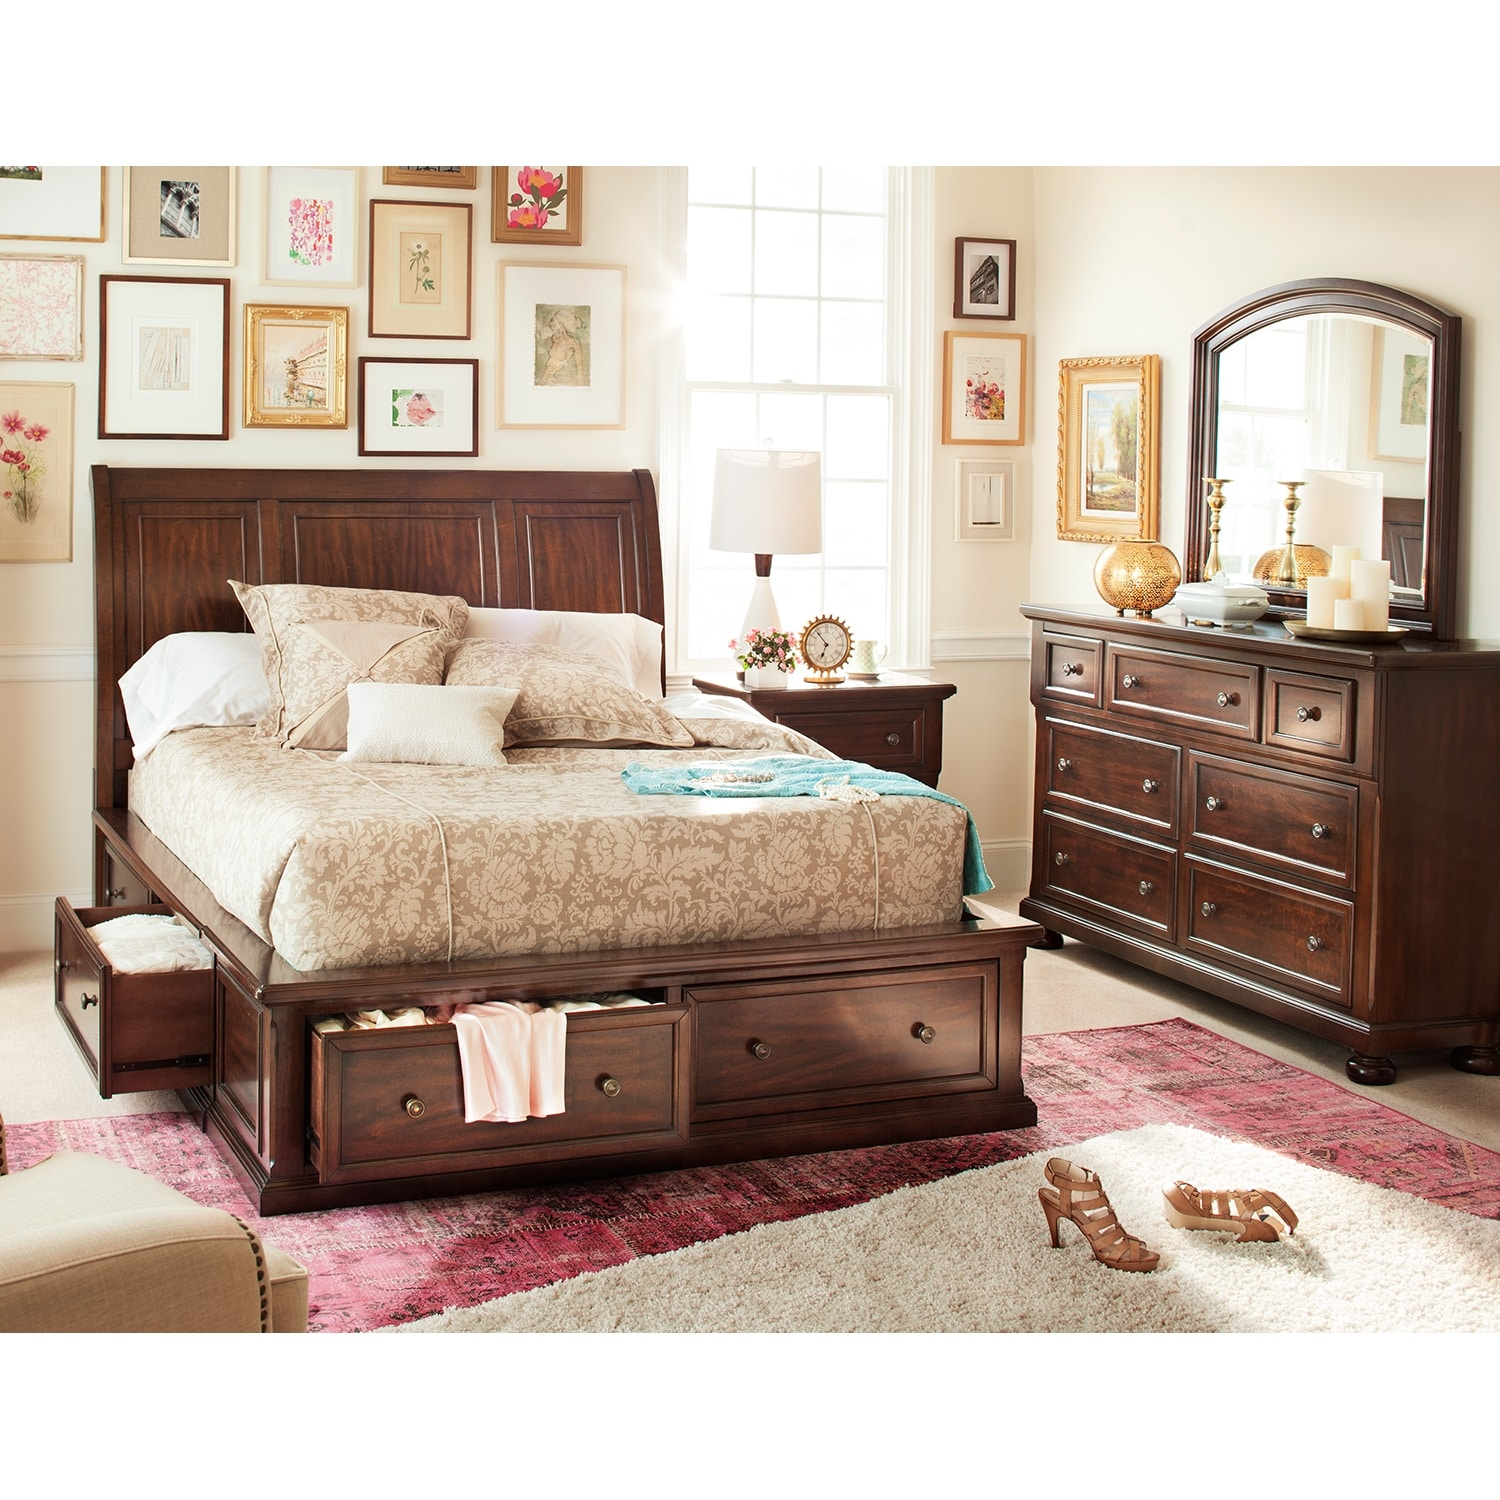 [Hanover 5 Pc. Queen Storage Bedroom]